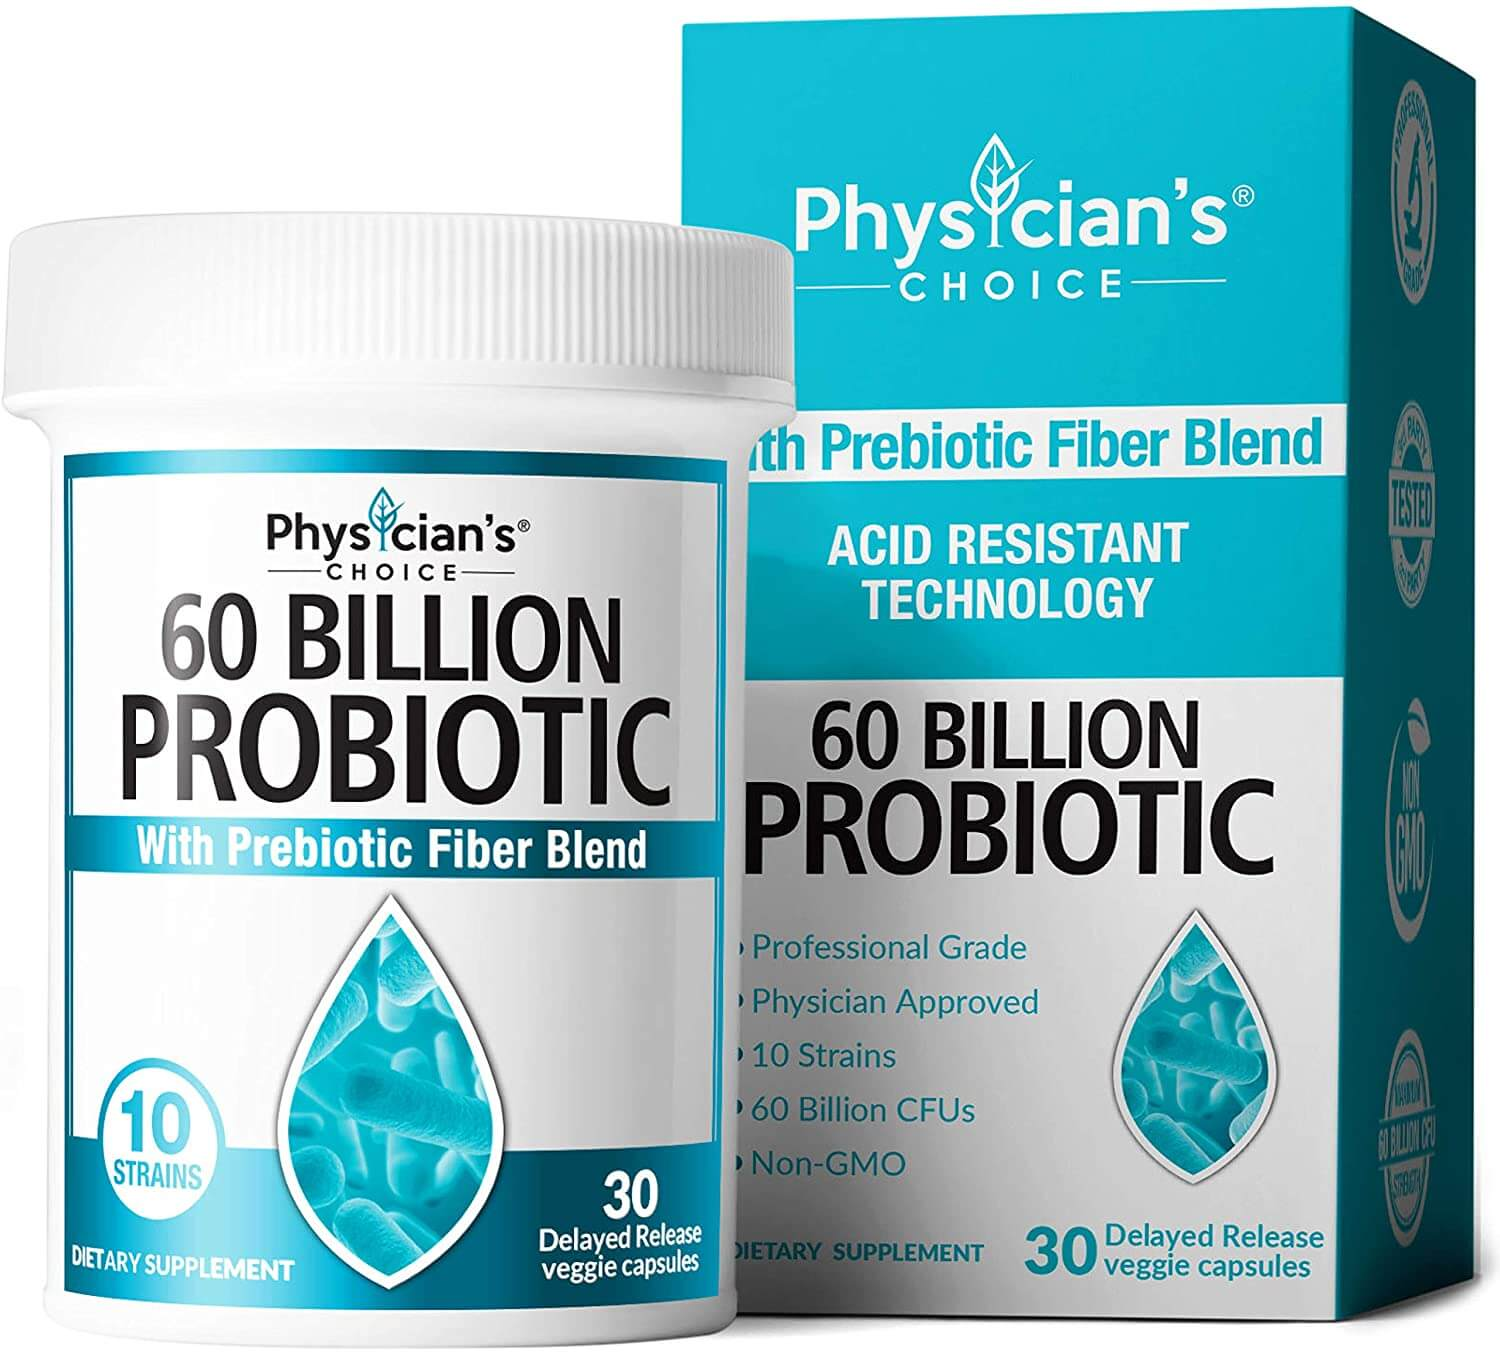 Probiotics 6o Billion